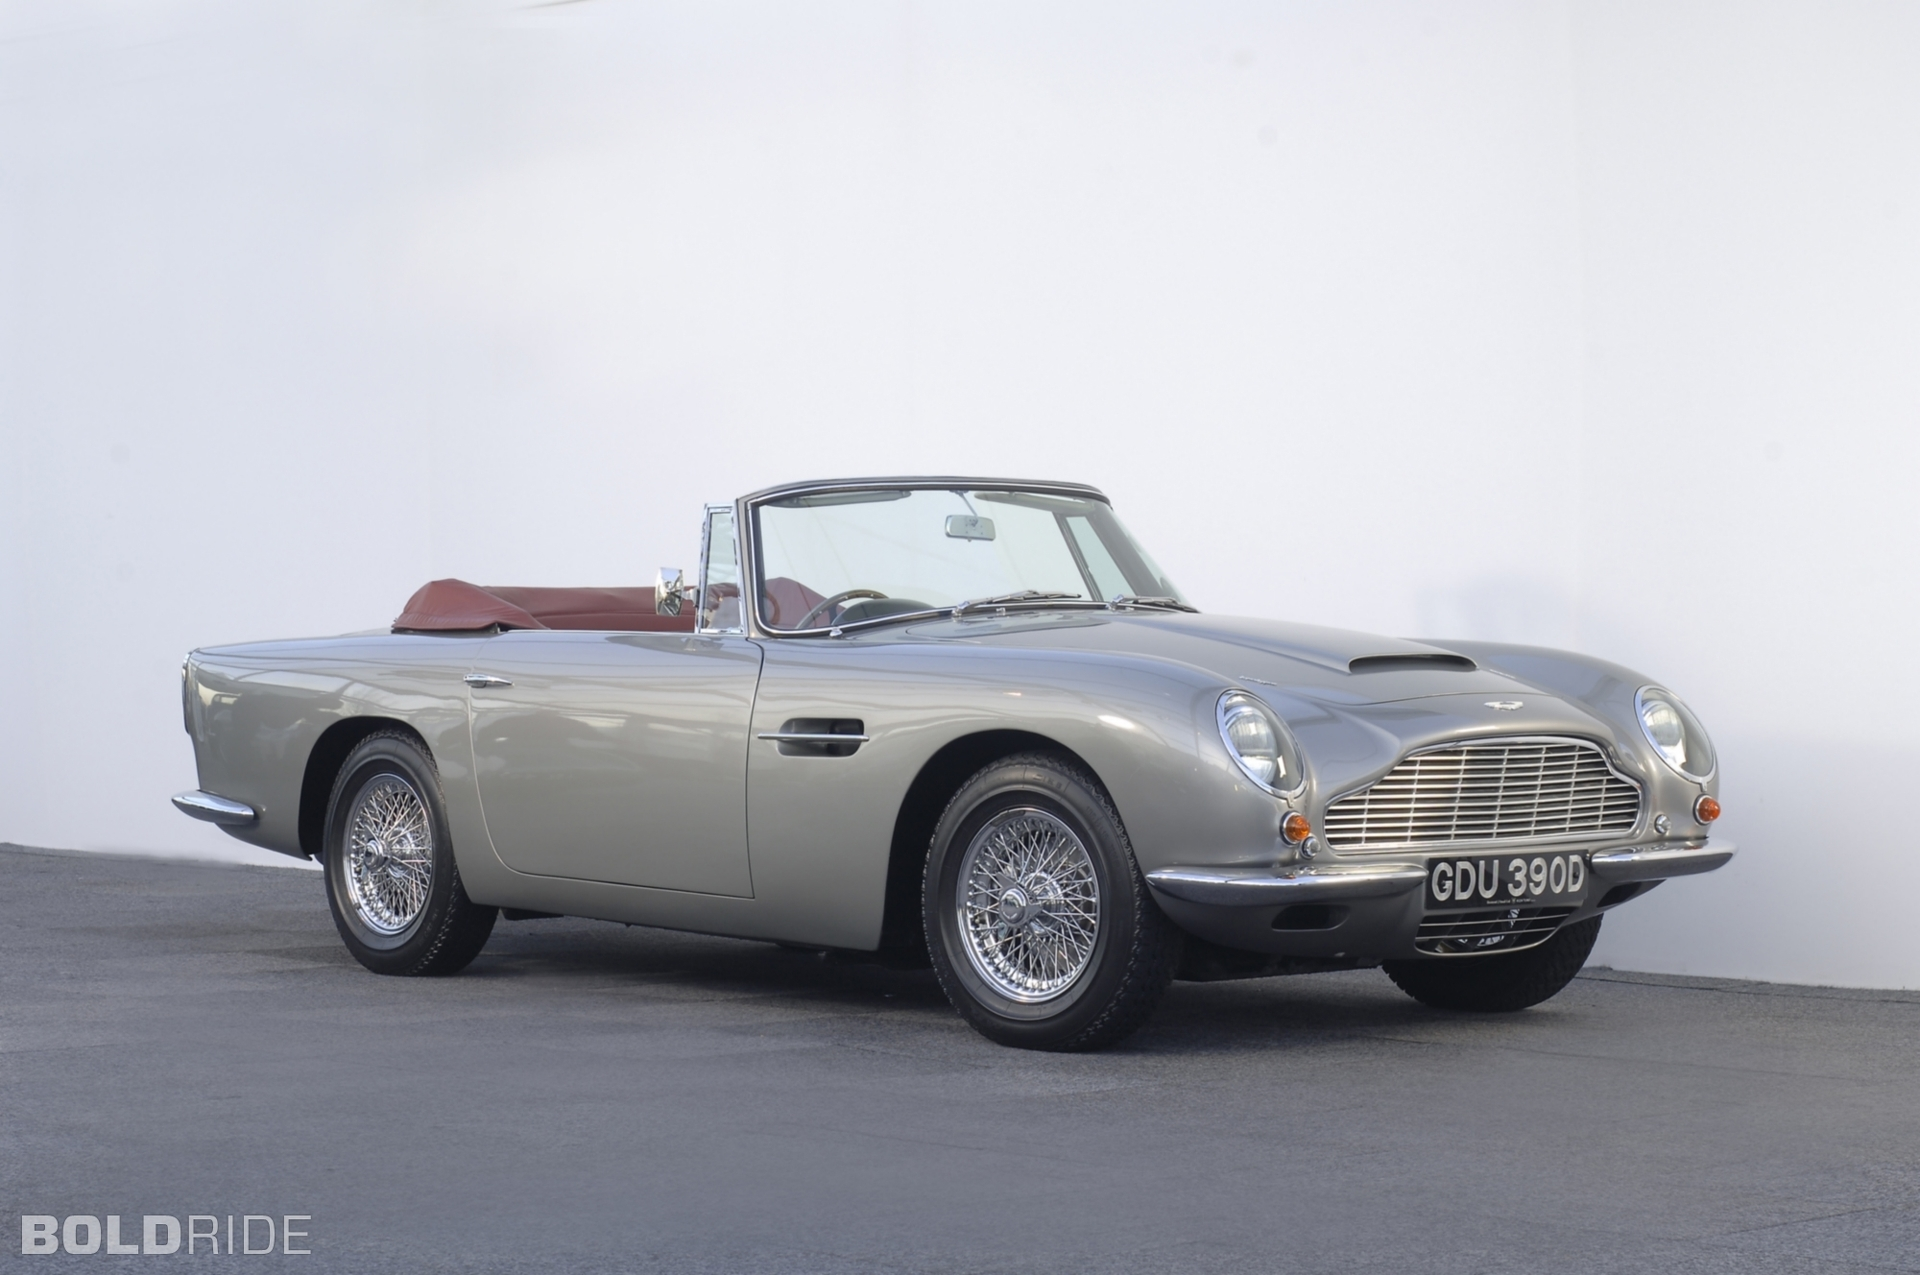 aston martin db6 short chassis volante. Black Bedroom Furniture Sets. Home Design Ideas